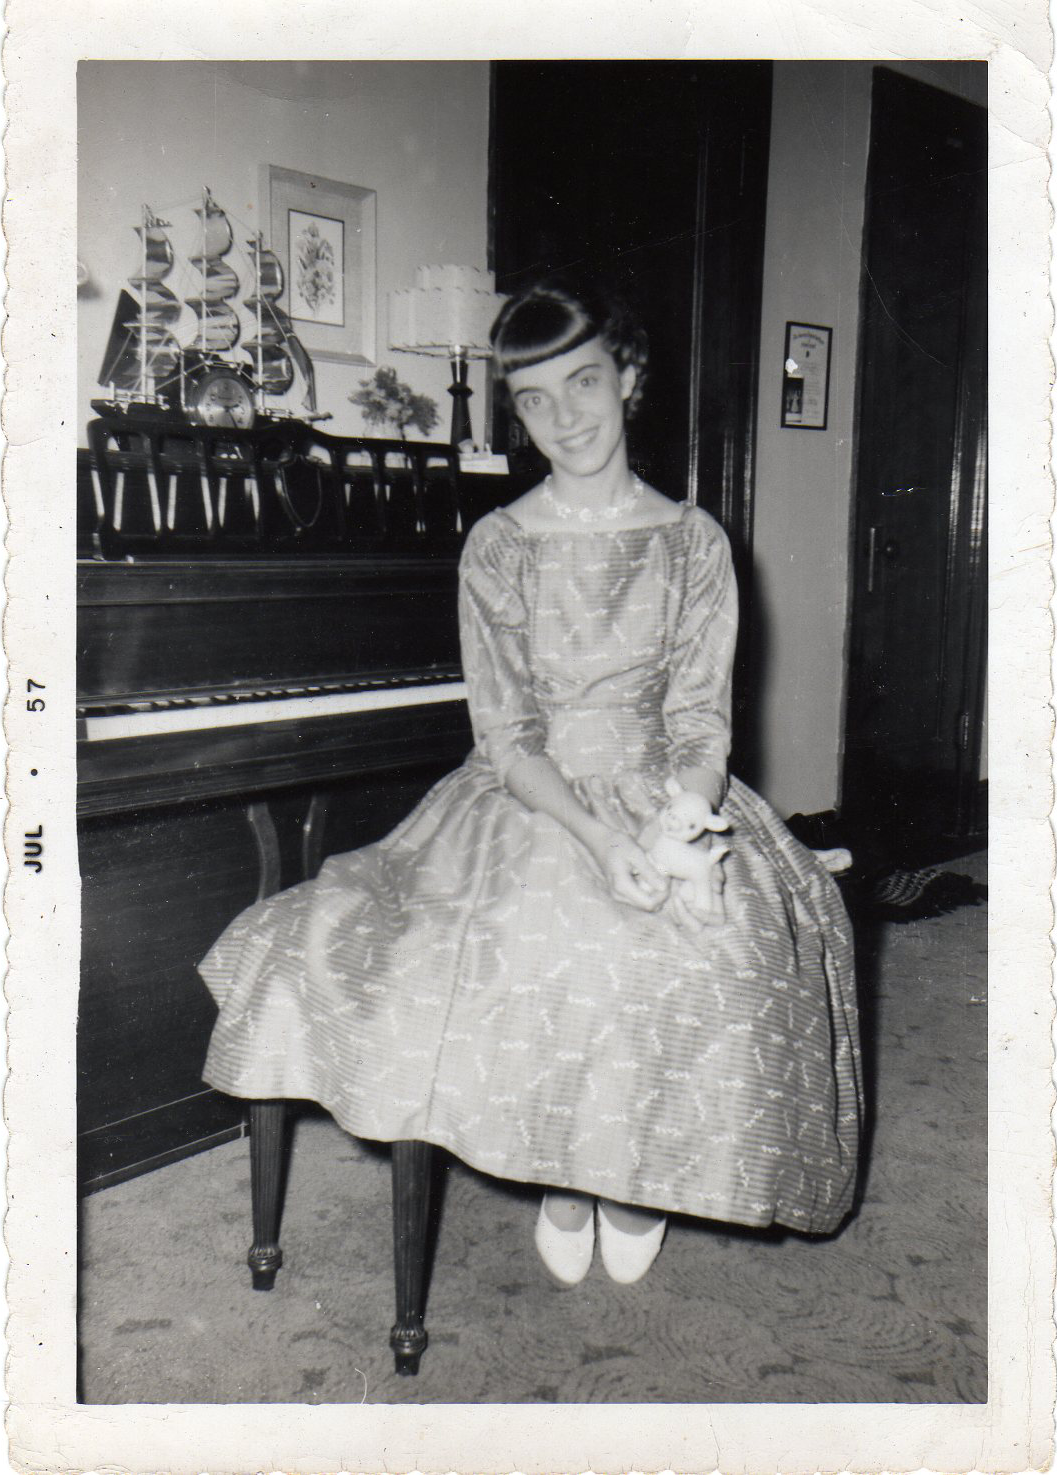 mom on piano bench